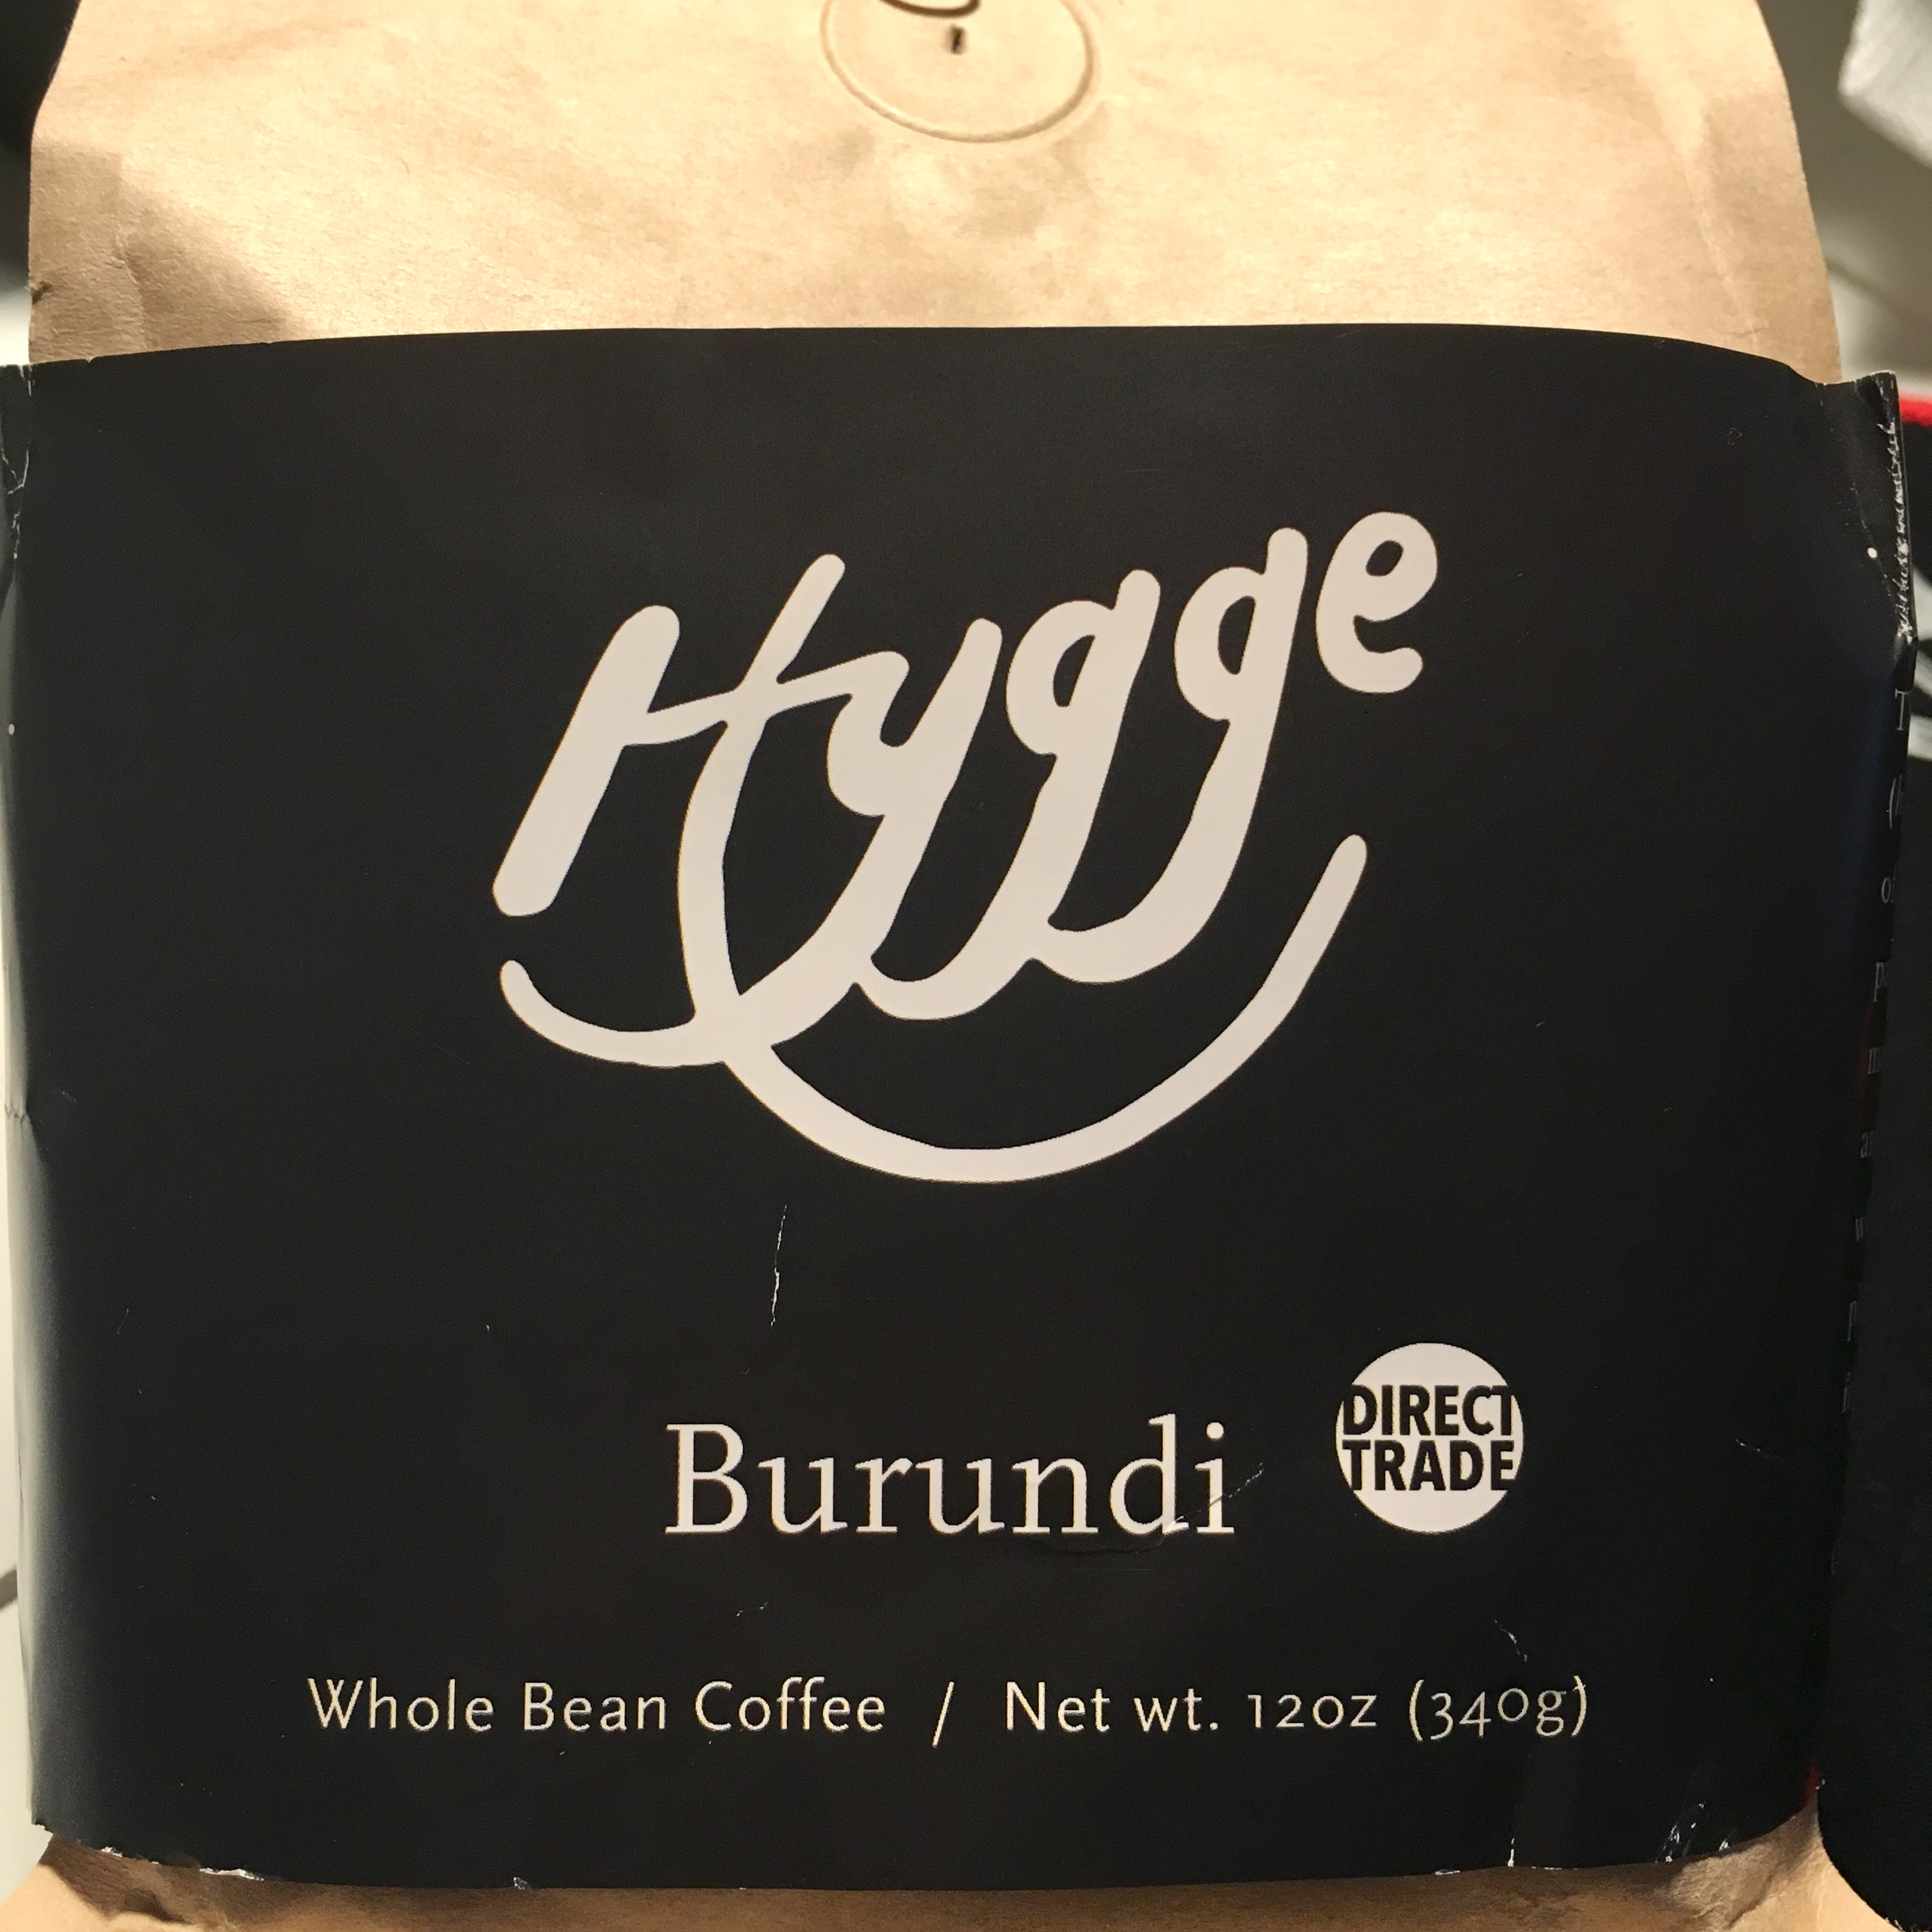 Hygge Coffee Co. Burundi